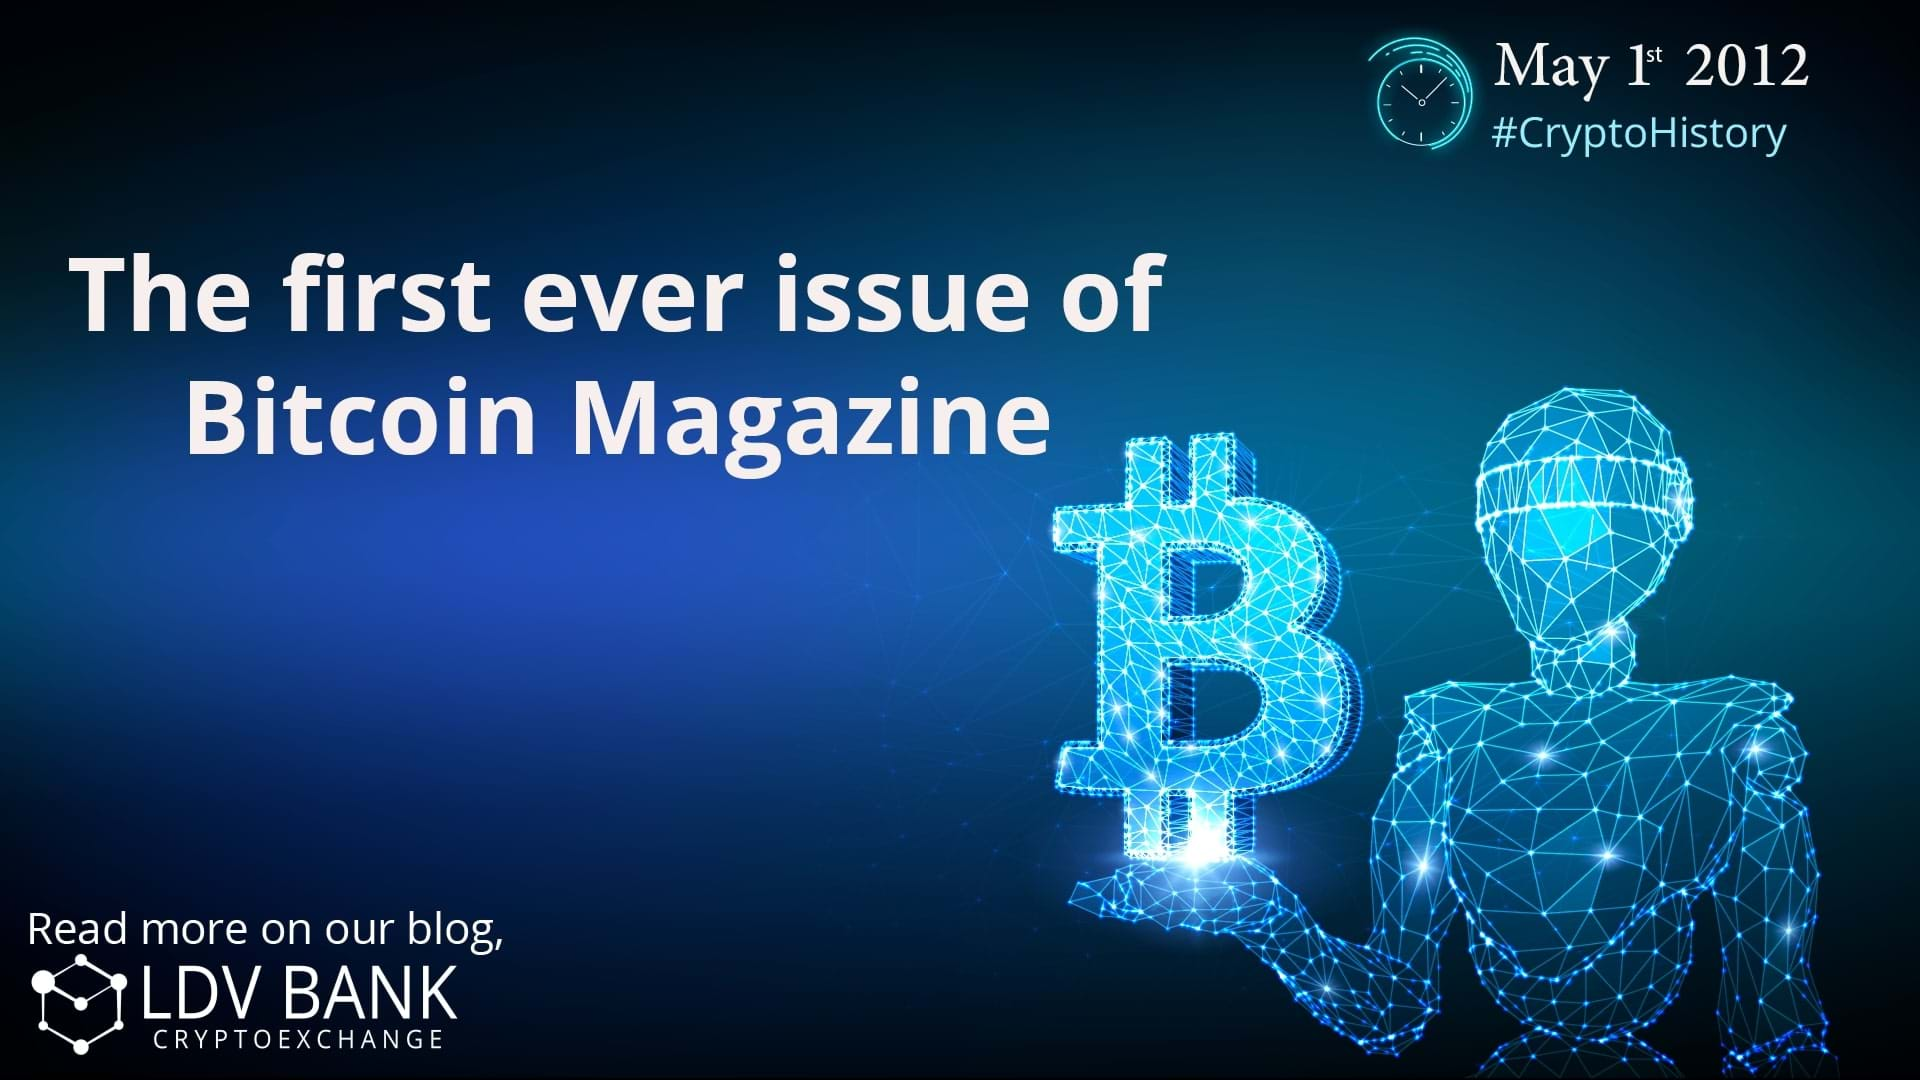 Do you know who the founder of Bitcoin Magazine is?